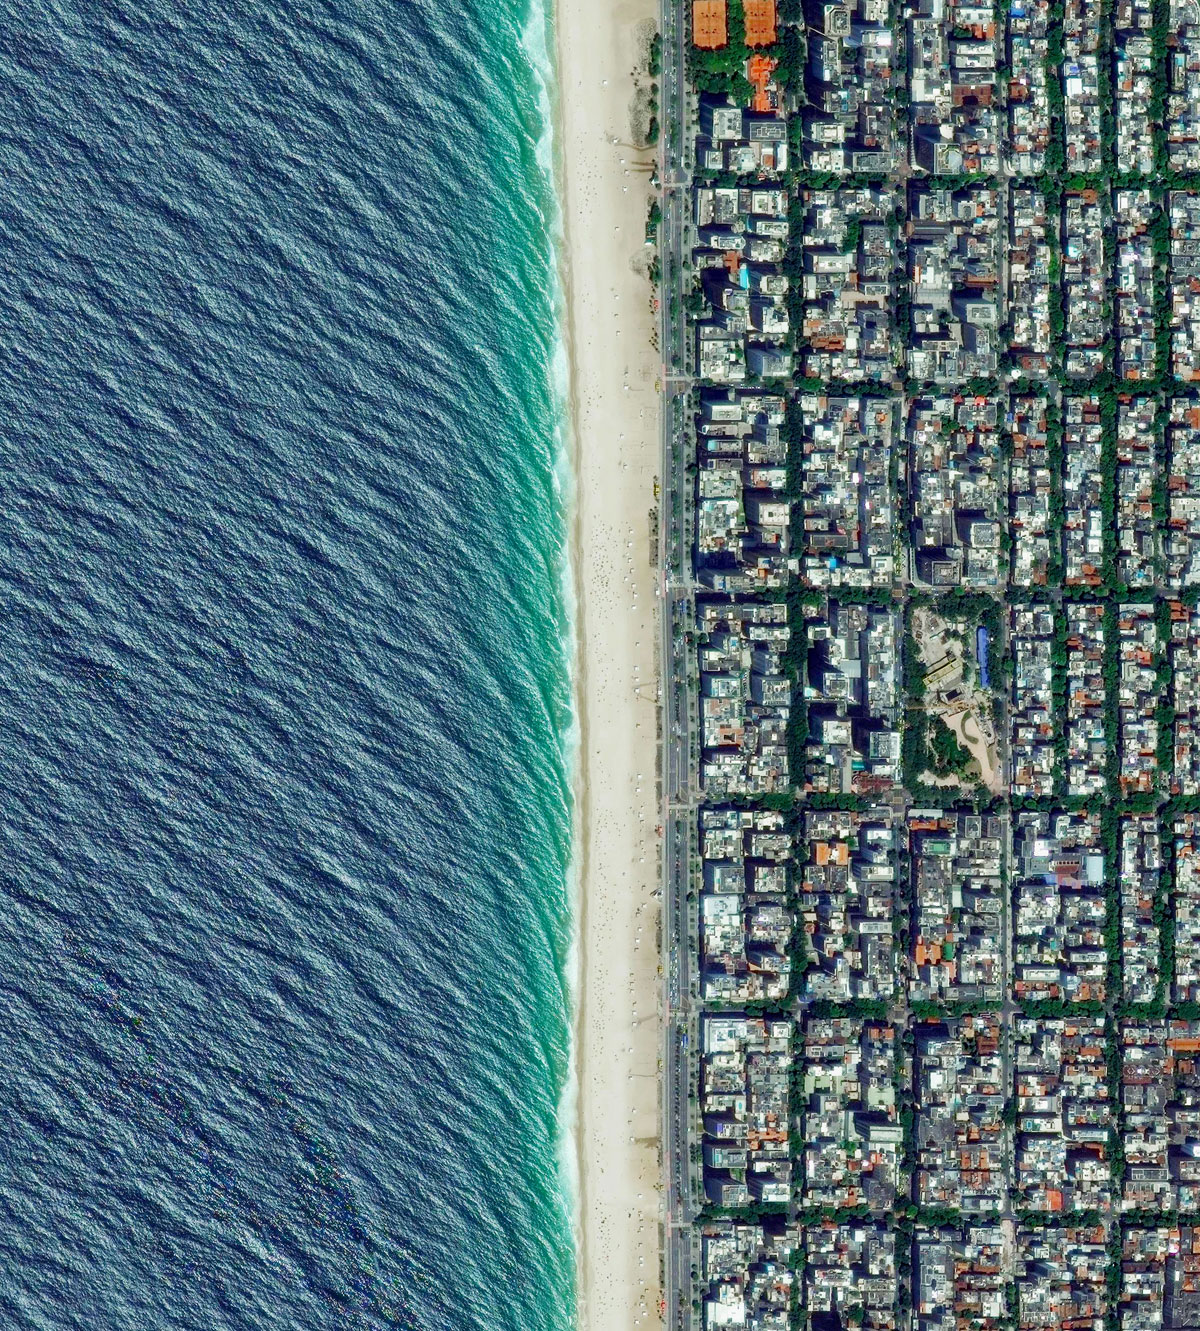 20 ipanema beach 15 High Res Photos That Will Give You a New Perspective on Earth